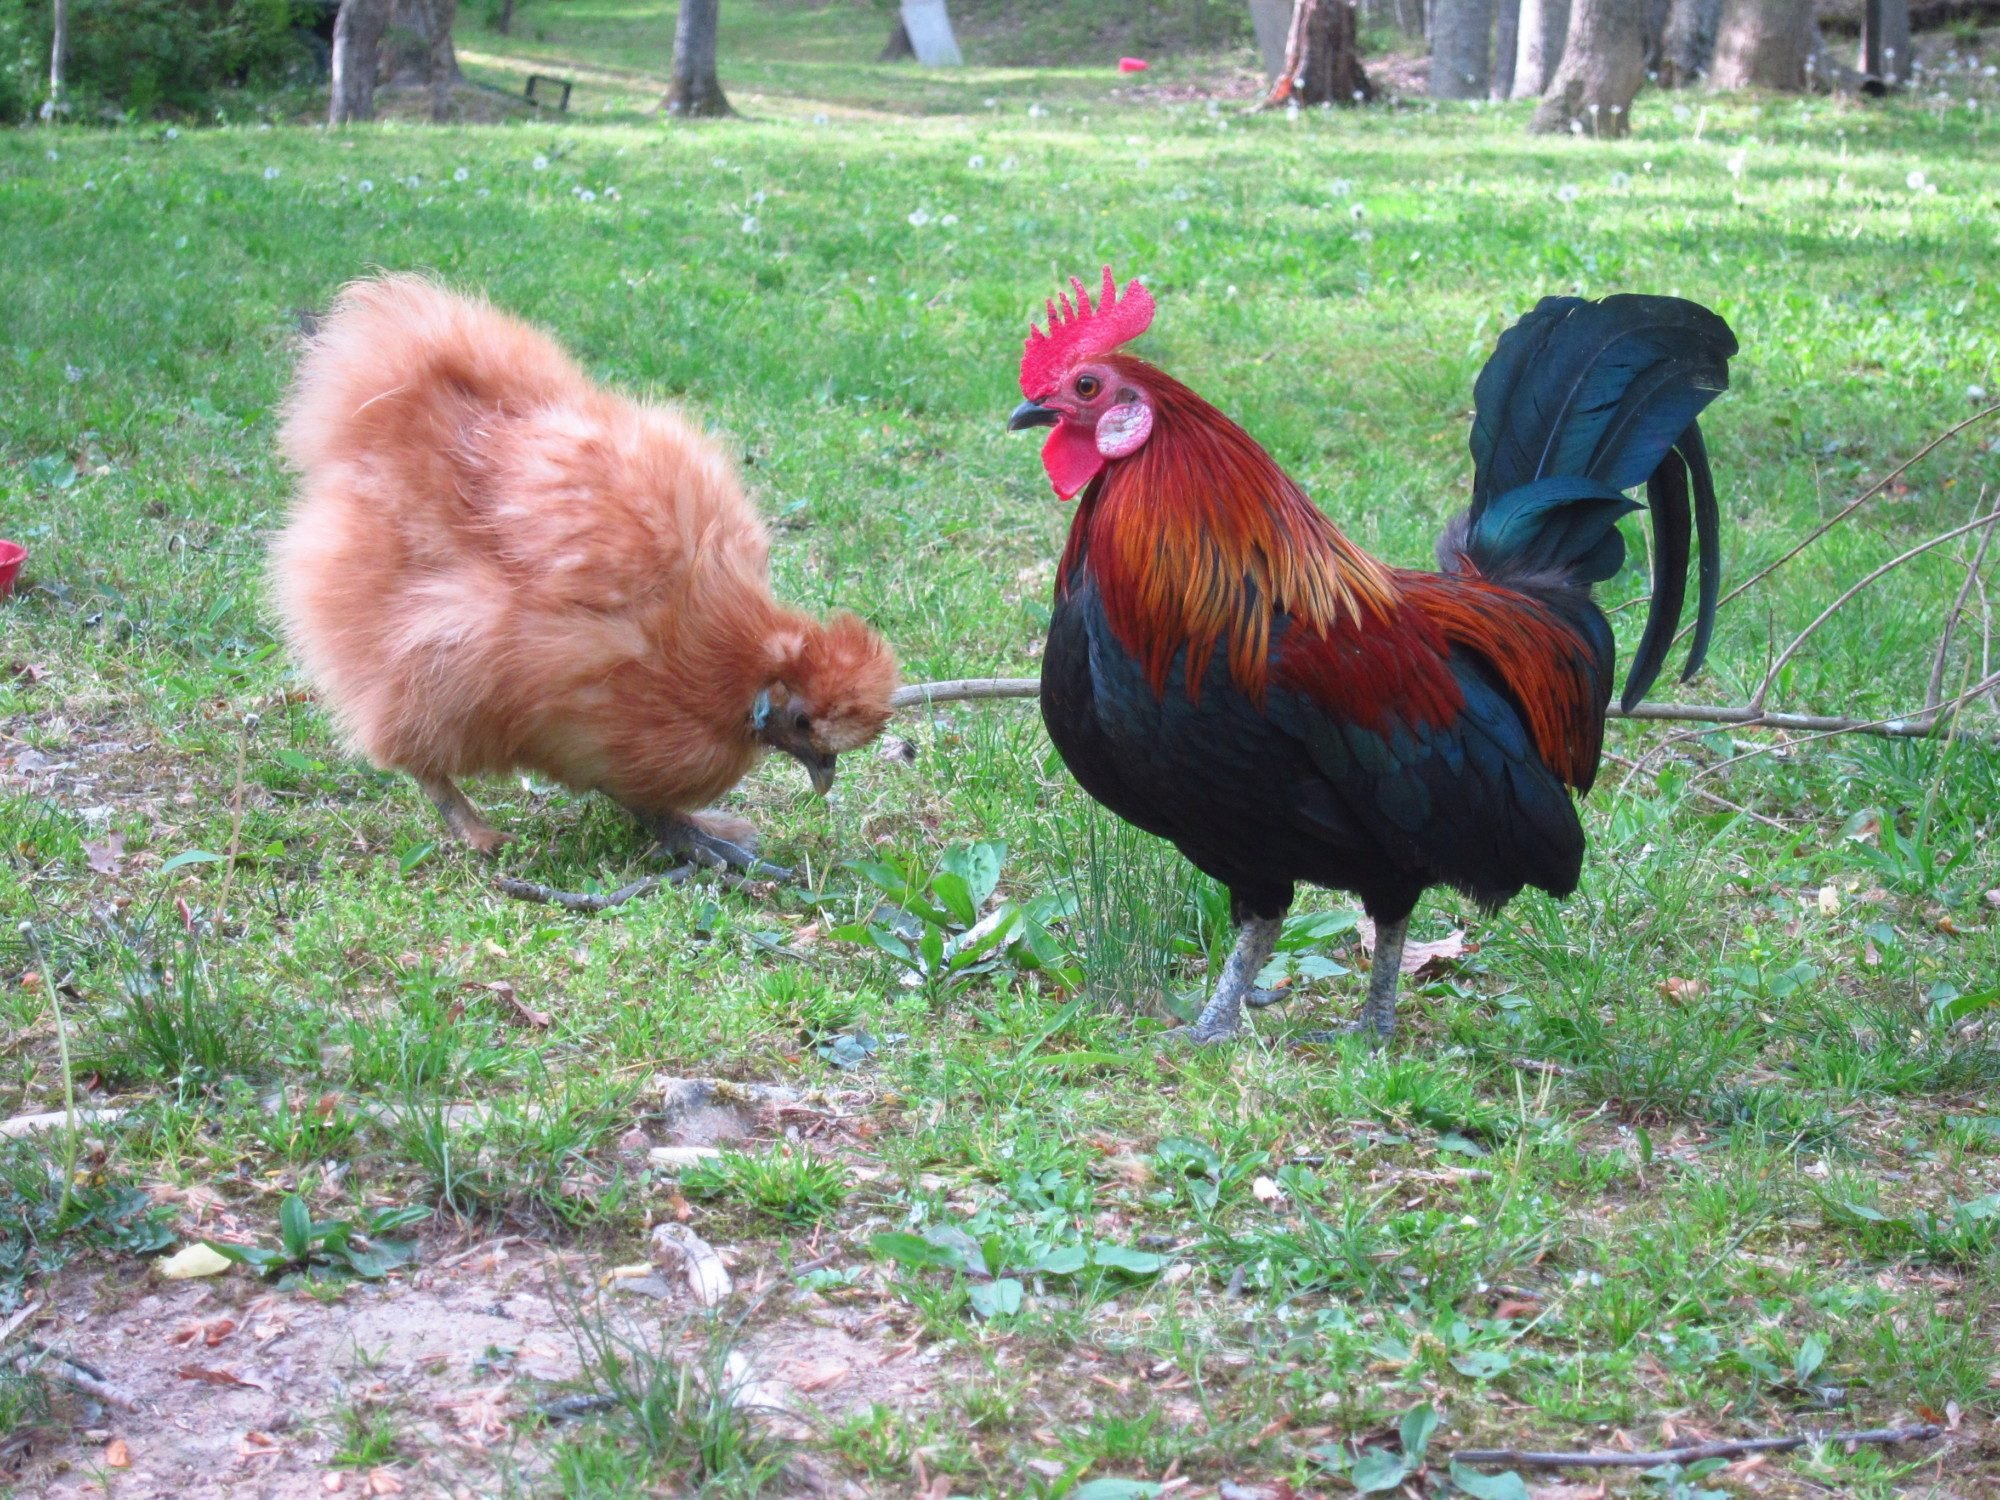 The Pro's and Cons of roosters.